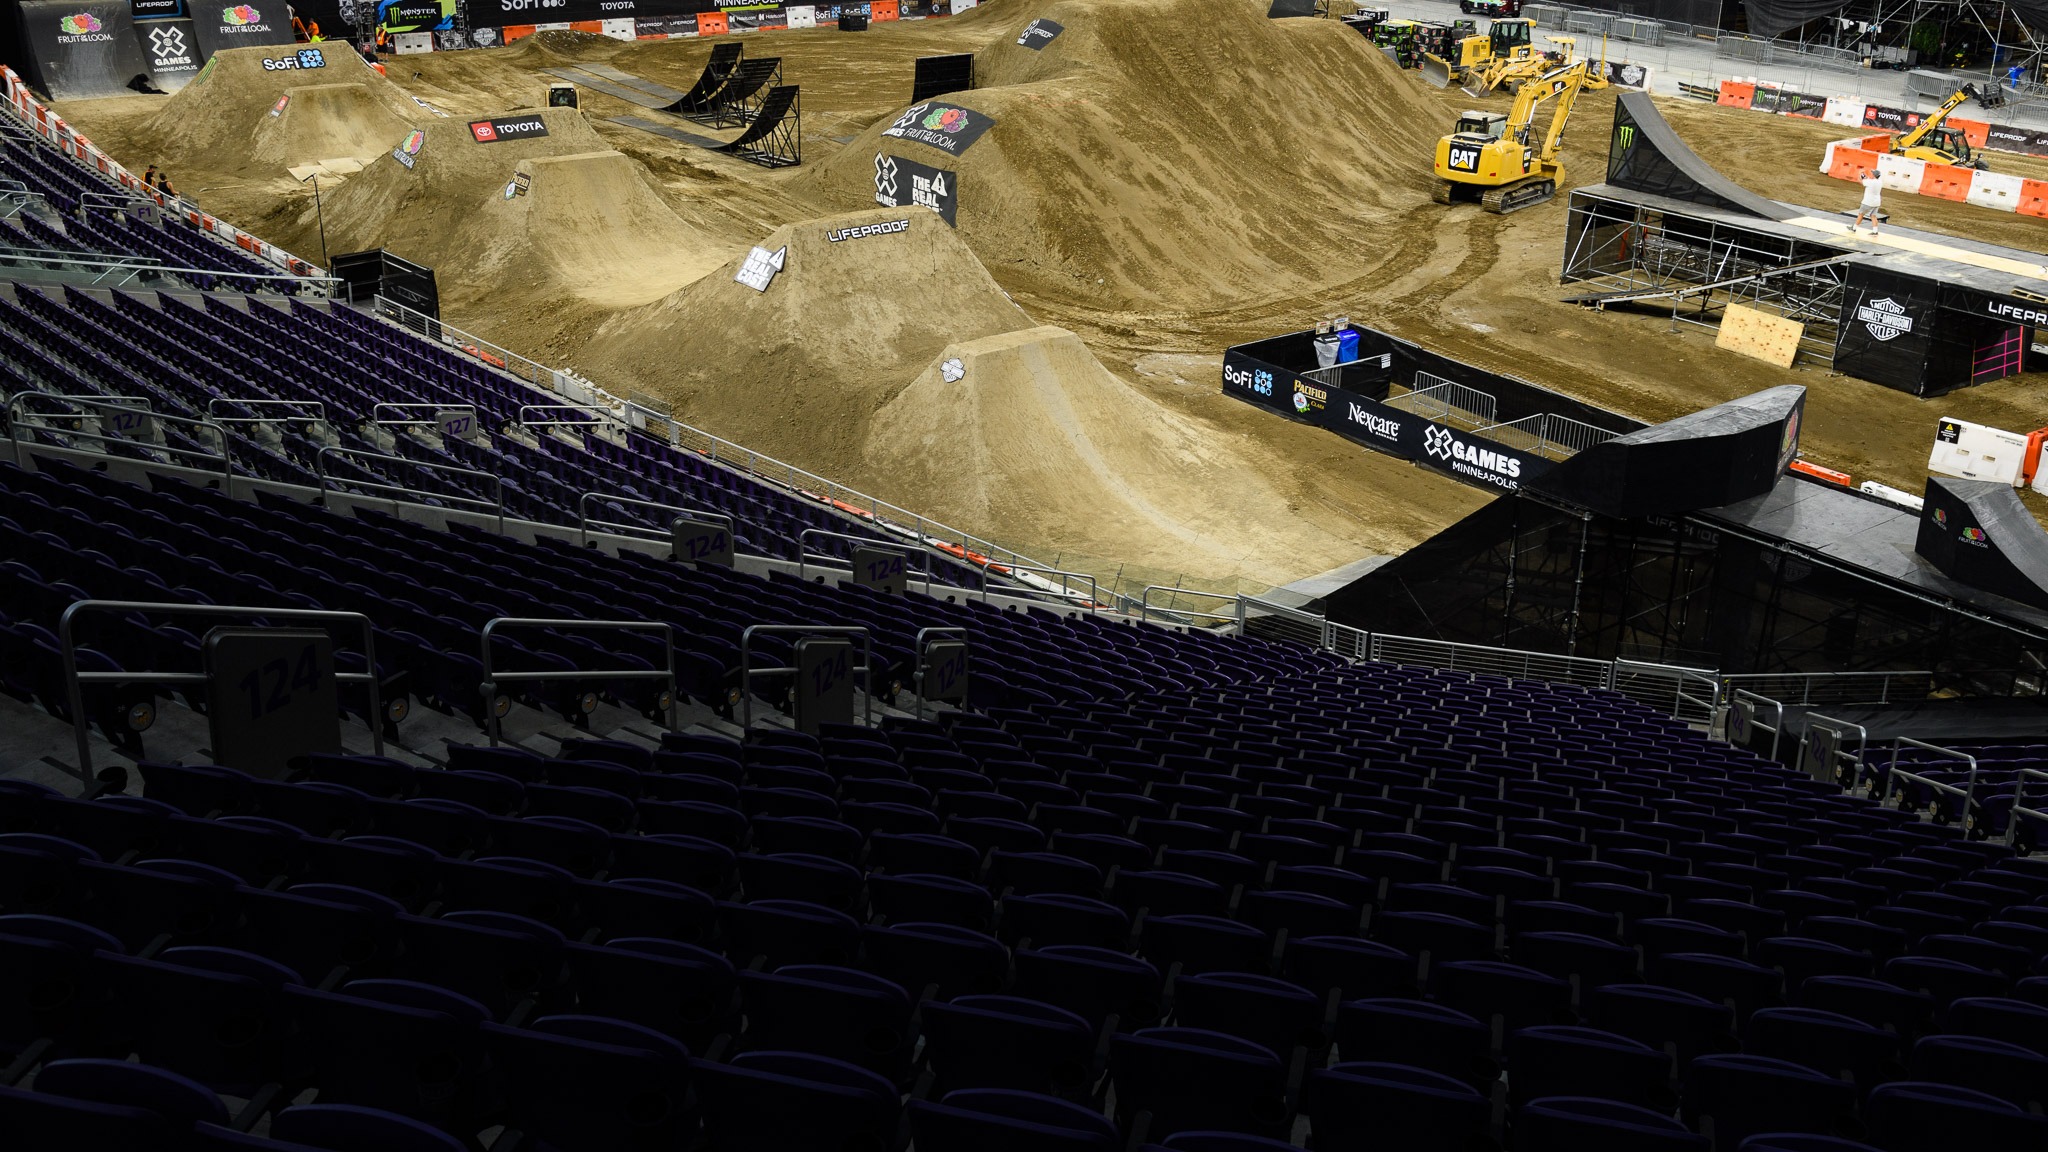 Here's a quick look at the BMX Dirt course, along with a few Moto X ramps before they were put in place for competition.